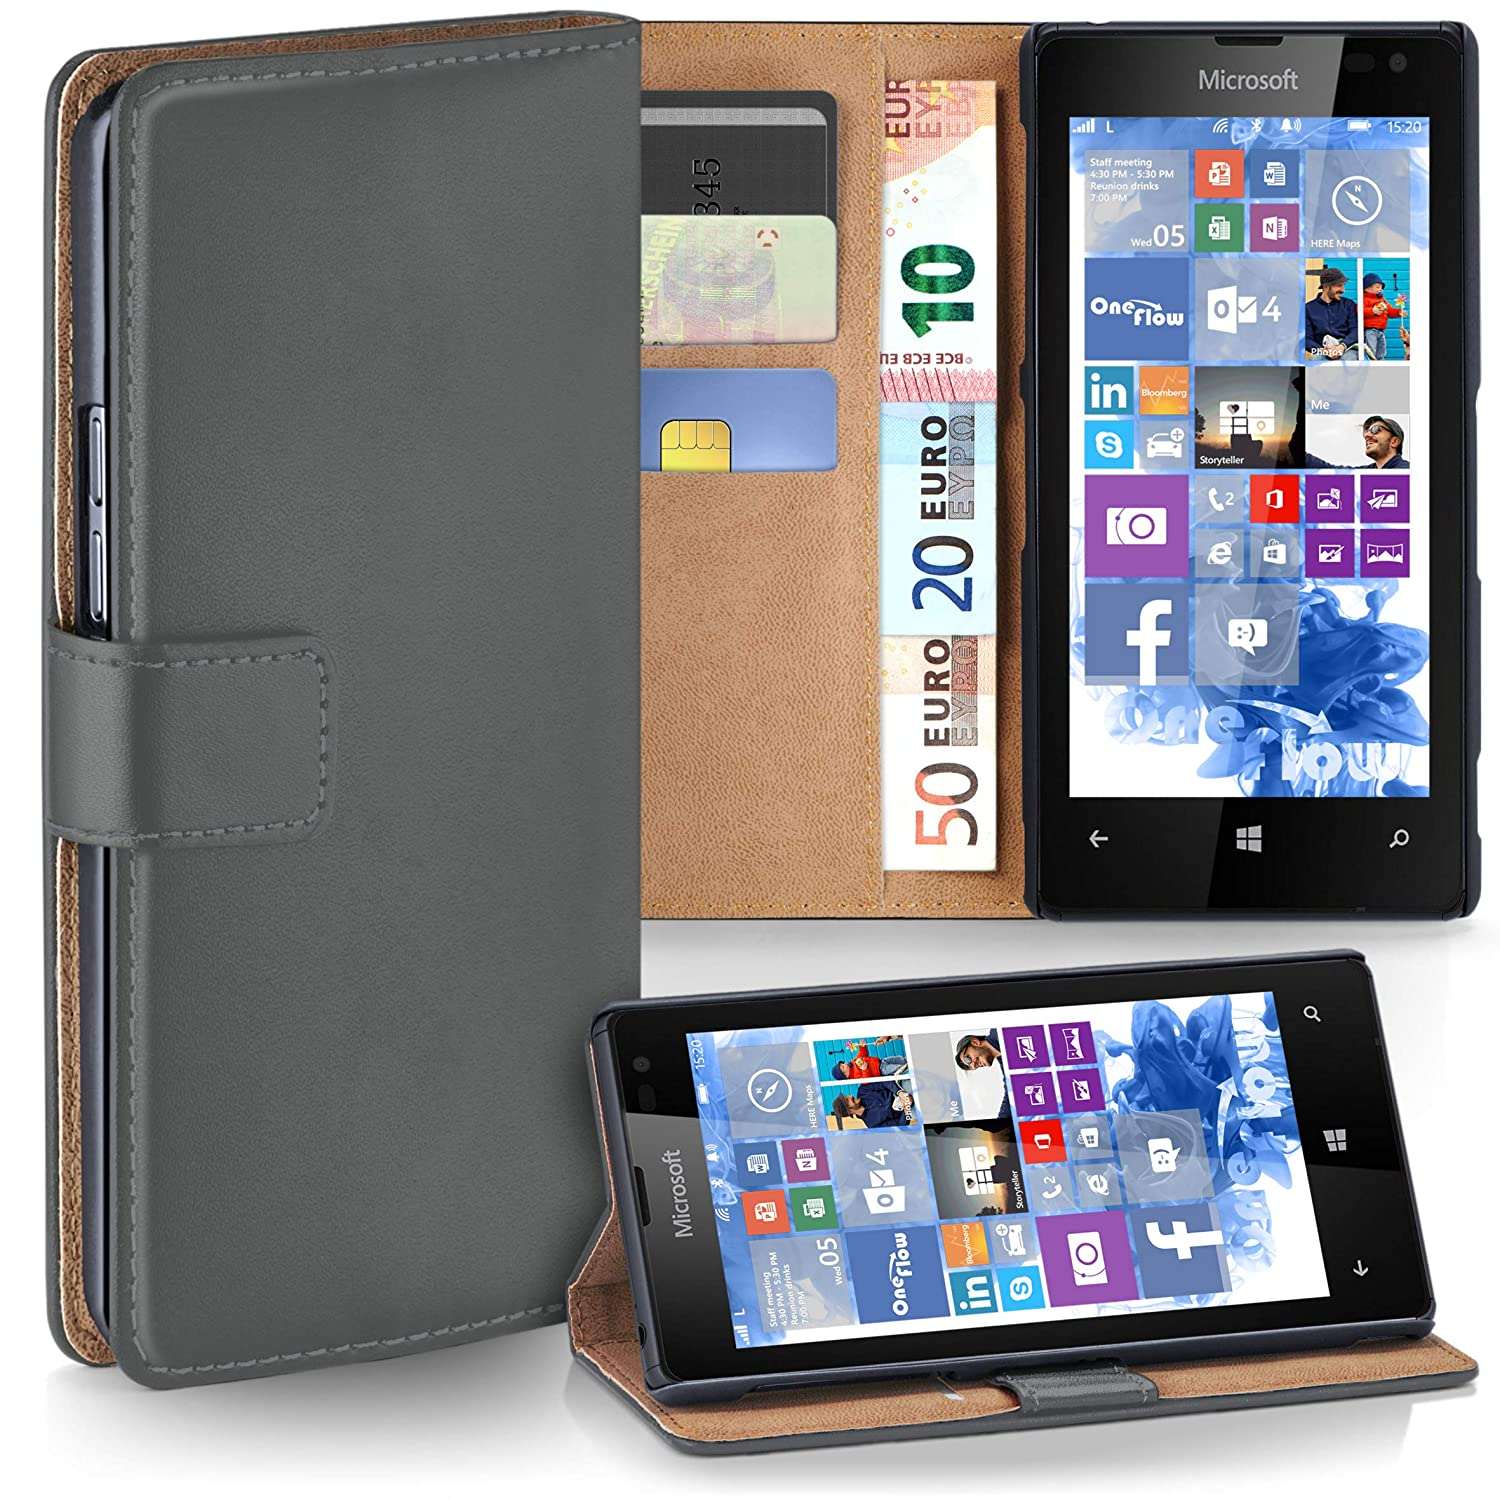 OneFlow Cover for Nokia Lumia 520/525 Cover case with card slots |  Flippable mobile phone flip case | Mobile phone cover protective case  accessory